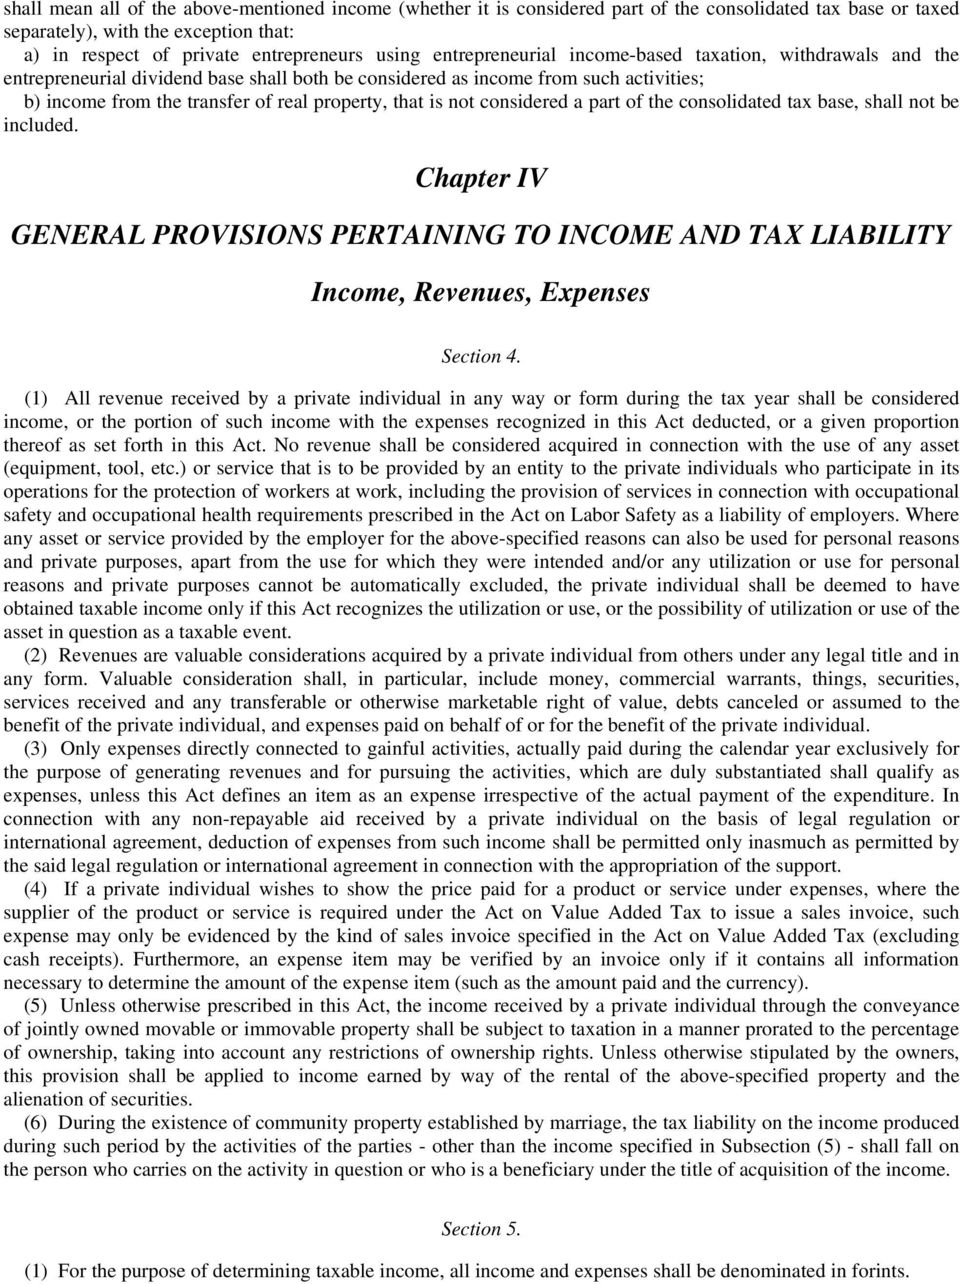 not considered a part of the consolidated tax base, shall not be included. Chapter IV GENERAL PROVISIONS PERTAINING TO INCOME AND TAX LIABILITY Income, Revenues, Expenses Section 4.